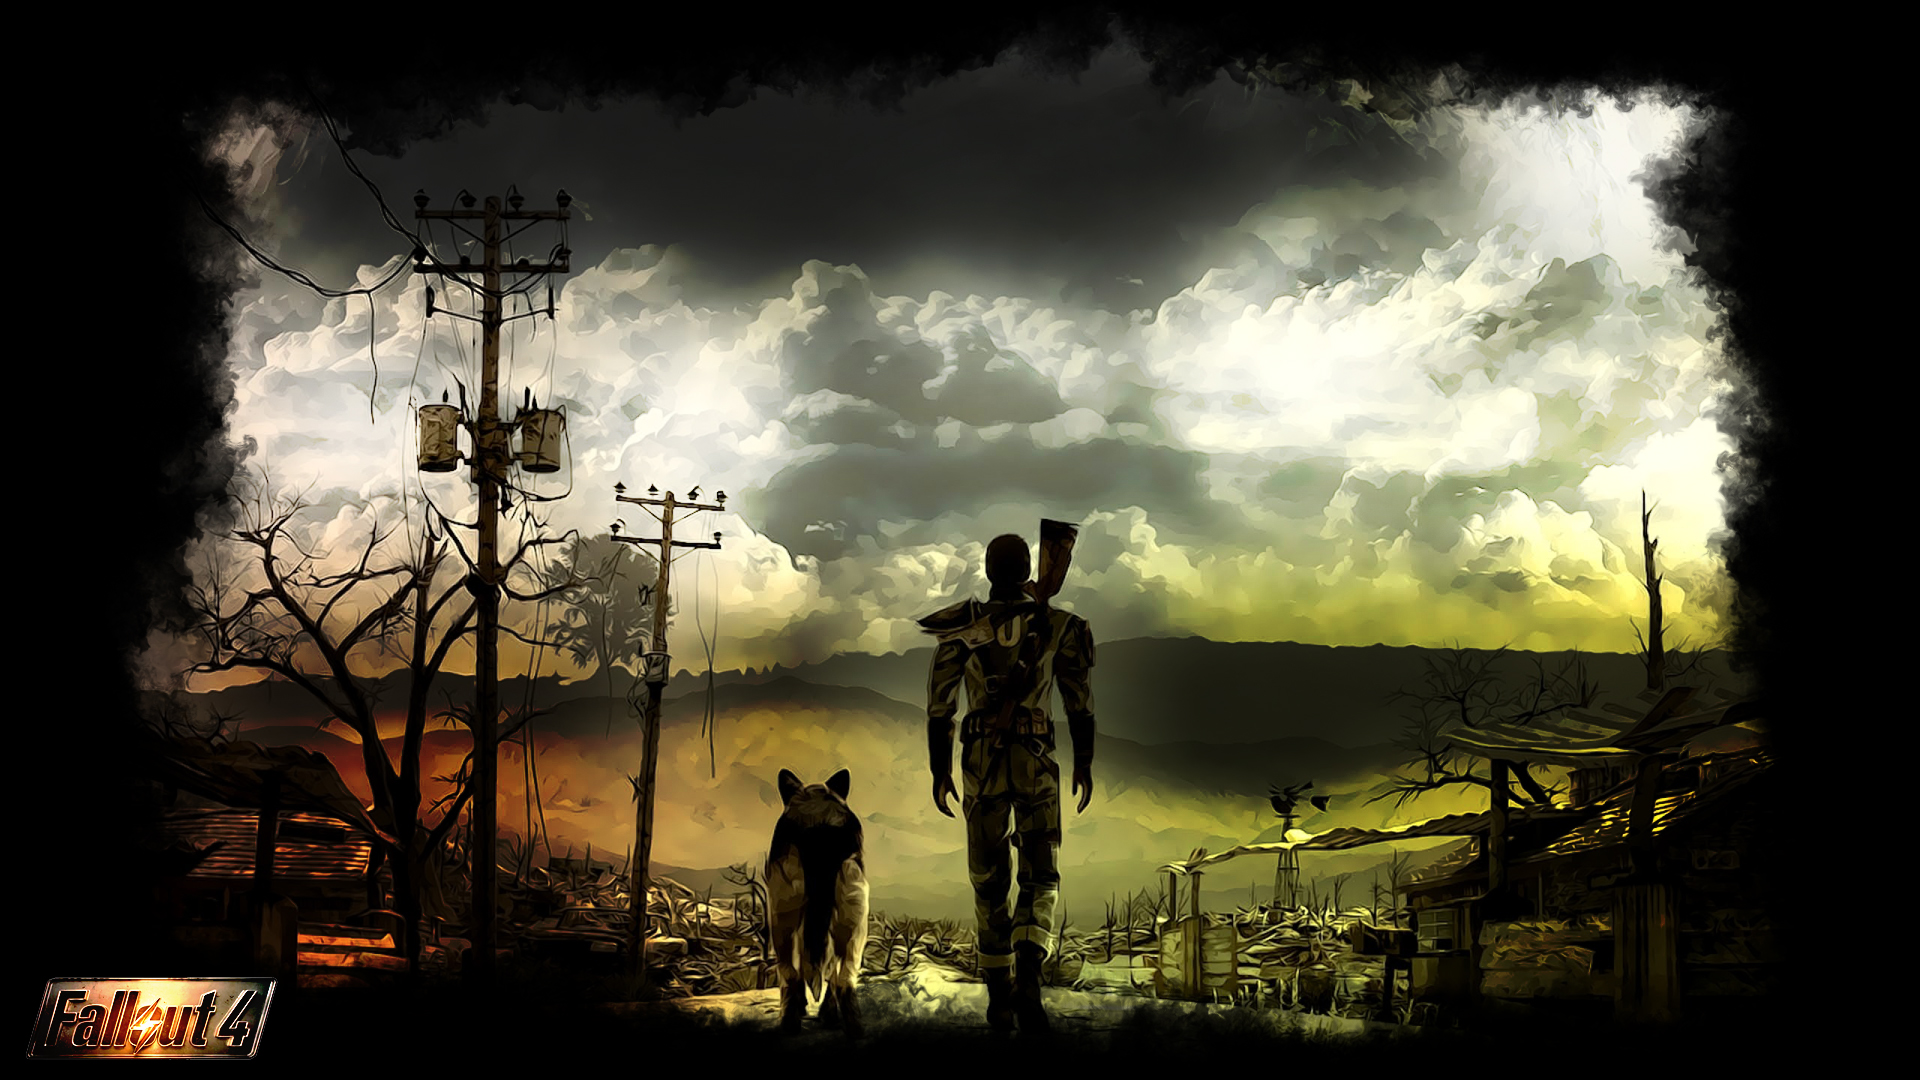 Fallout 4 Wallpaper By BeastyBeauty